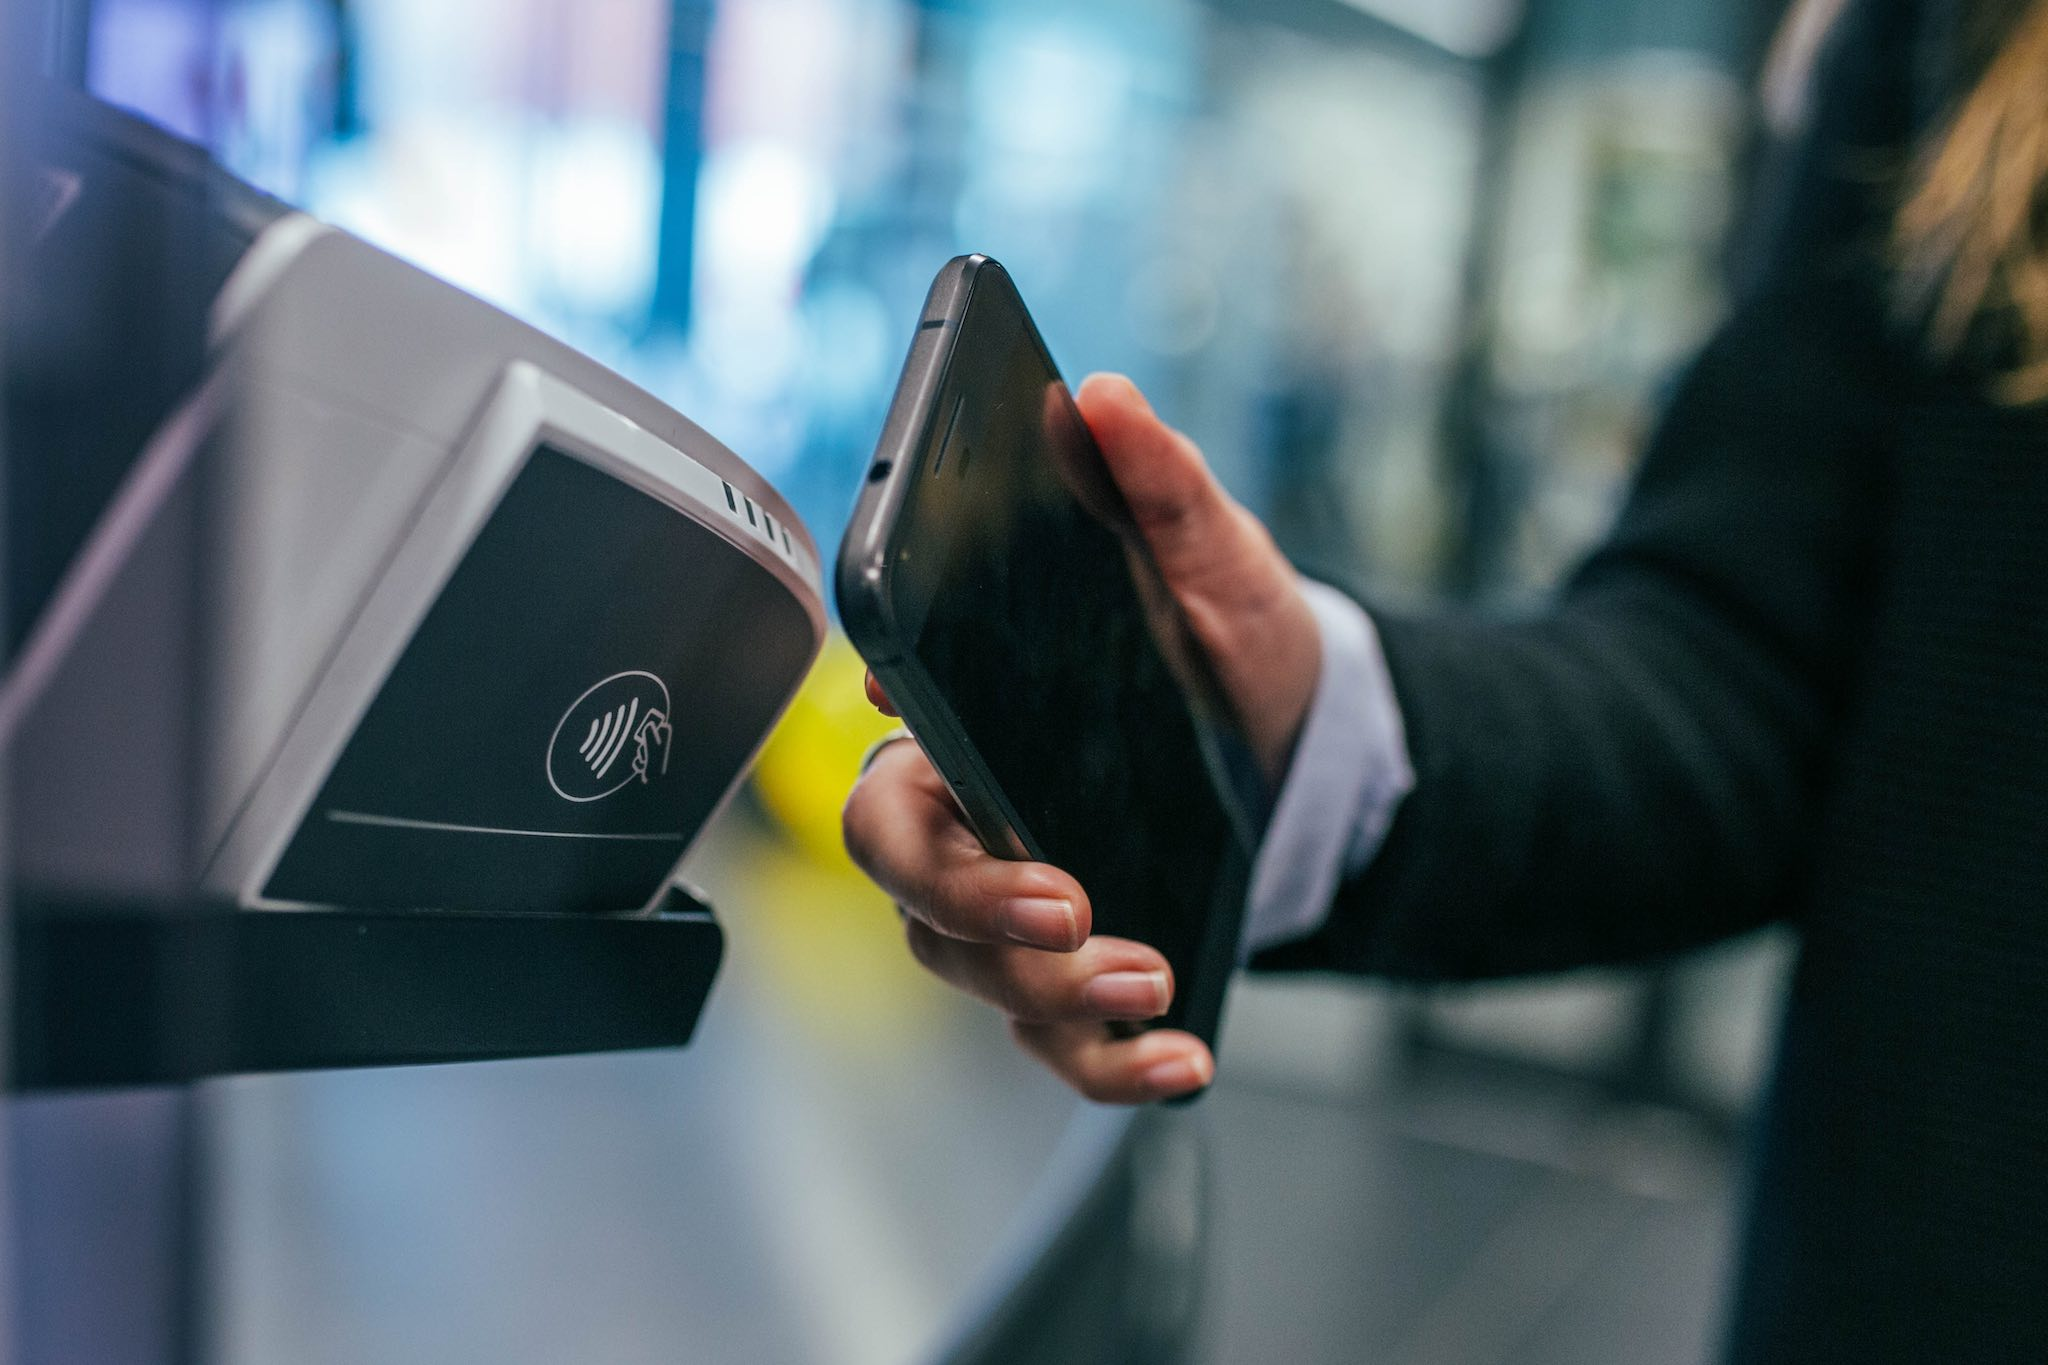 How Secure are Digital Wallets and Mobile Payments (Apple